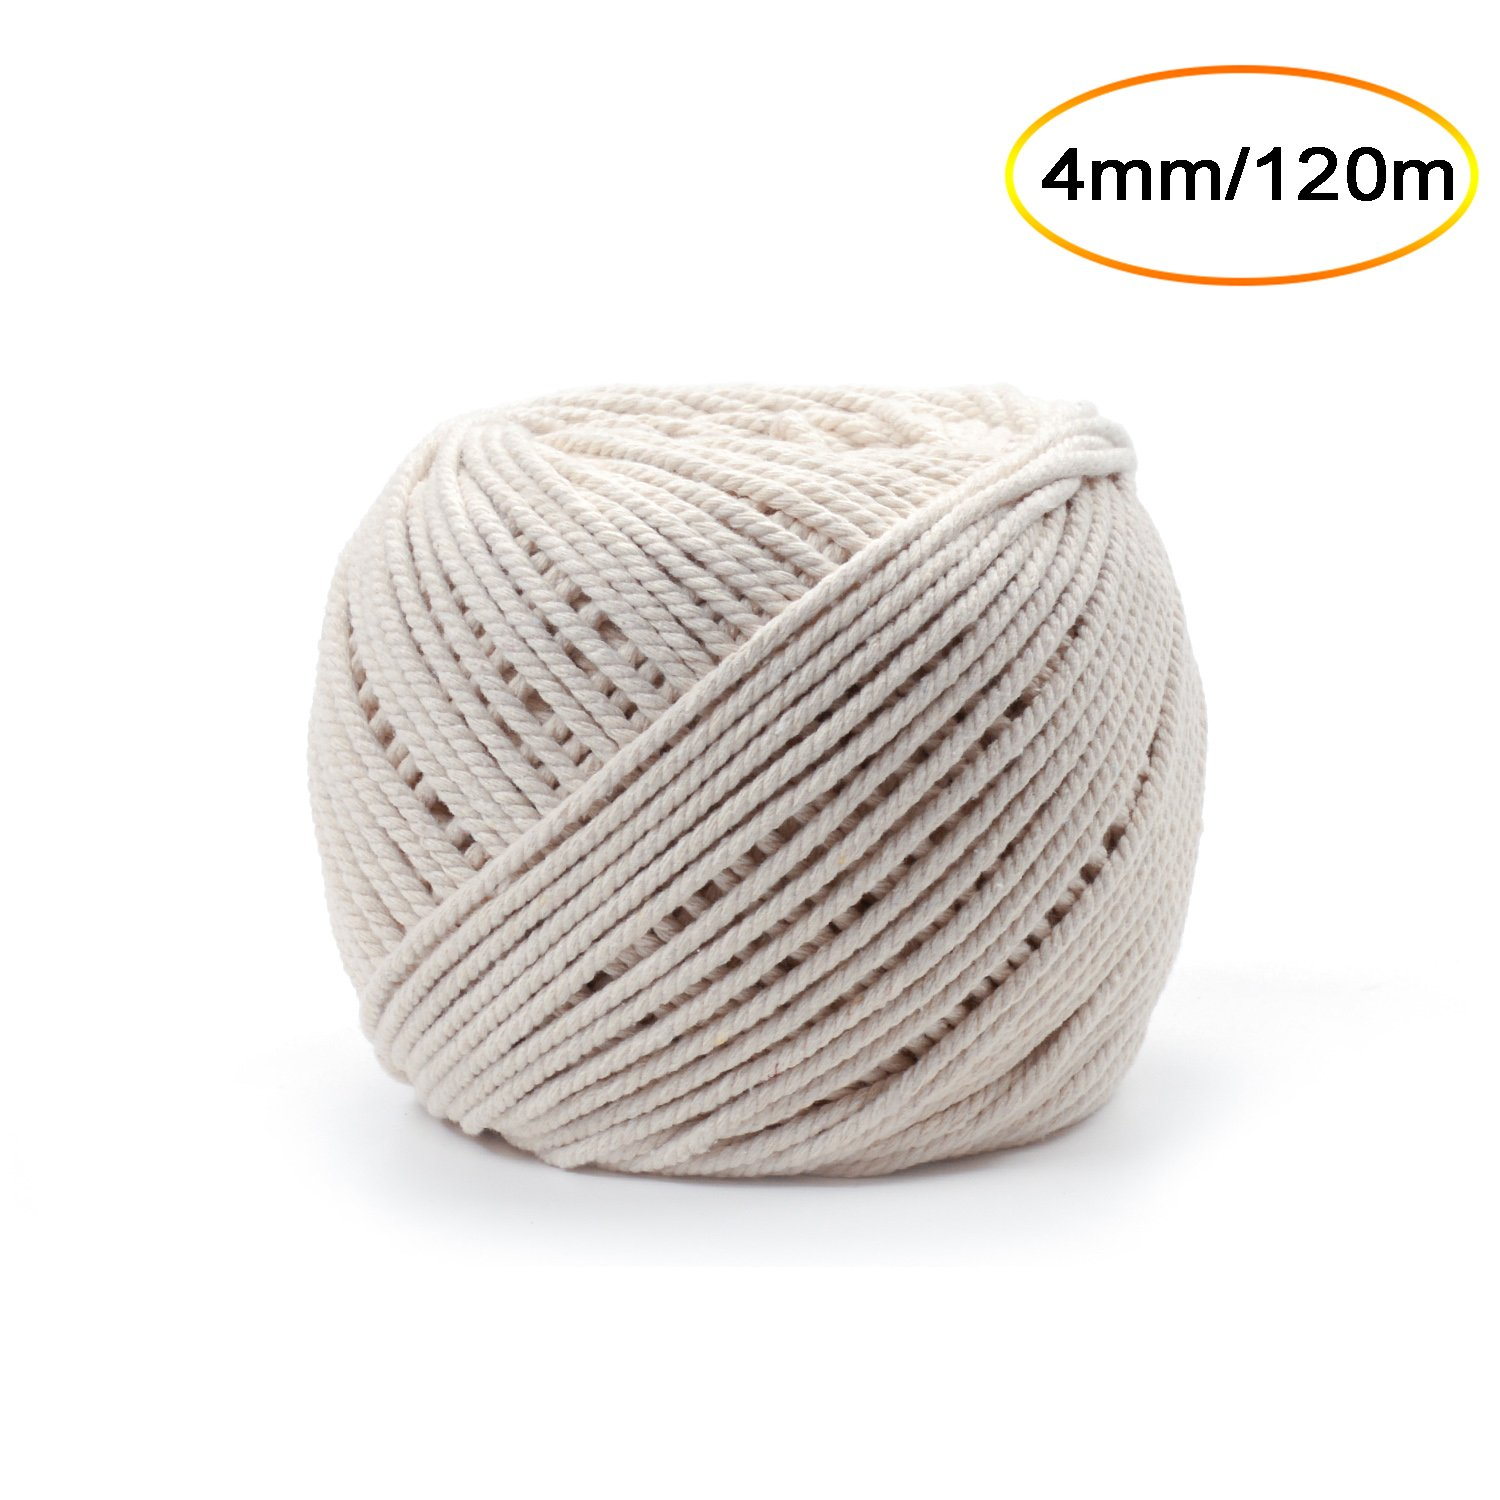 eborder Cotton Cords Macrame Rope DIY Wall Hanging Plant Craft Cord Knitting Cotton Rope String, Natural Color 120 m (4 mm)